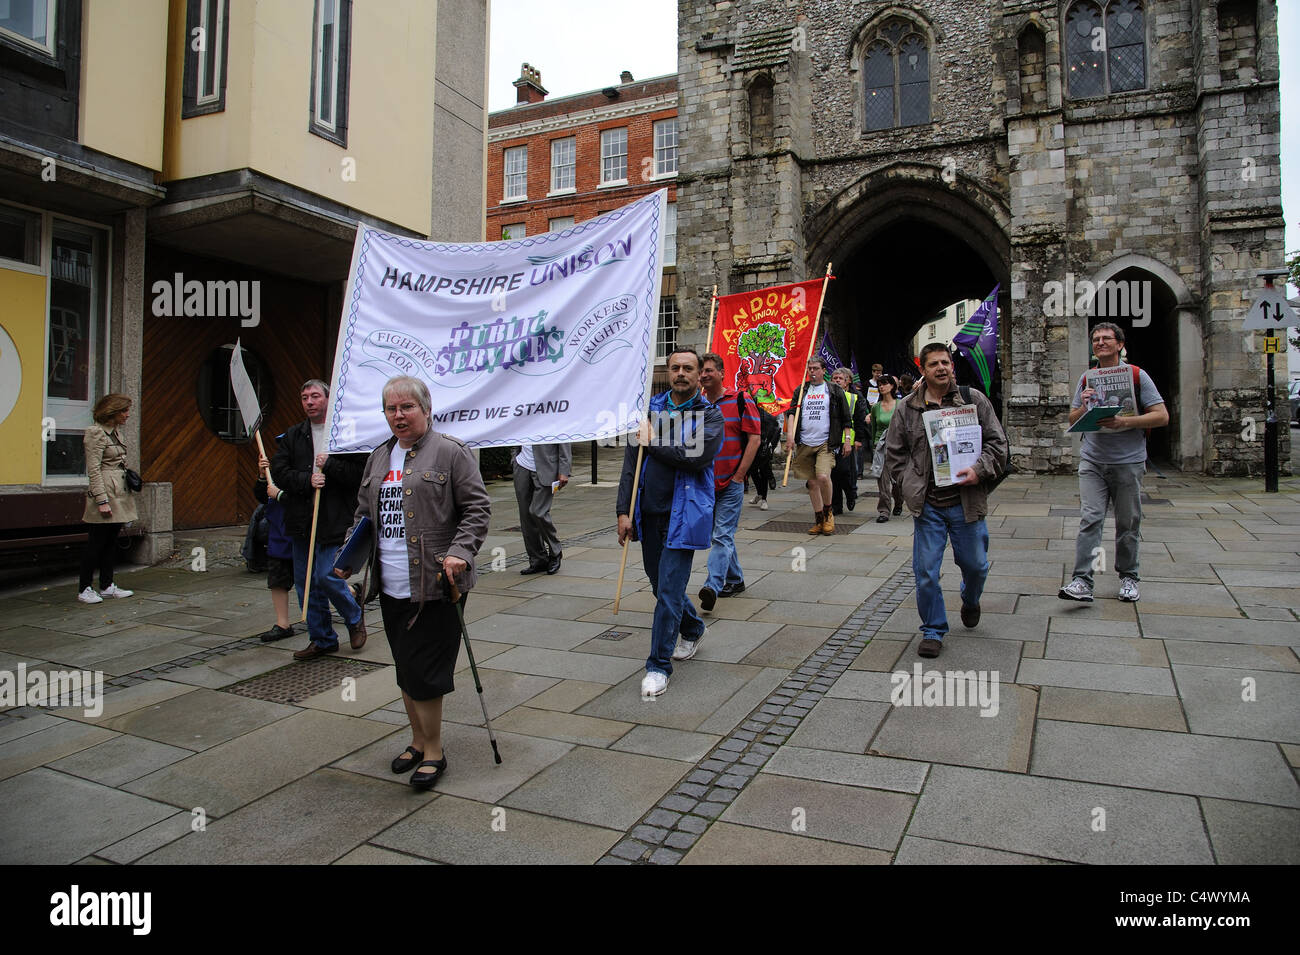 Trade Unionists protesting against public service cuts enter the historic city of Winchester via the Westgate - Stock Image